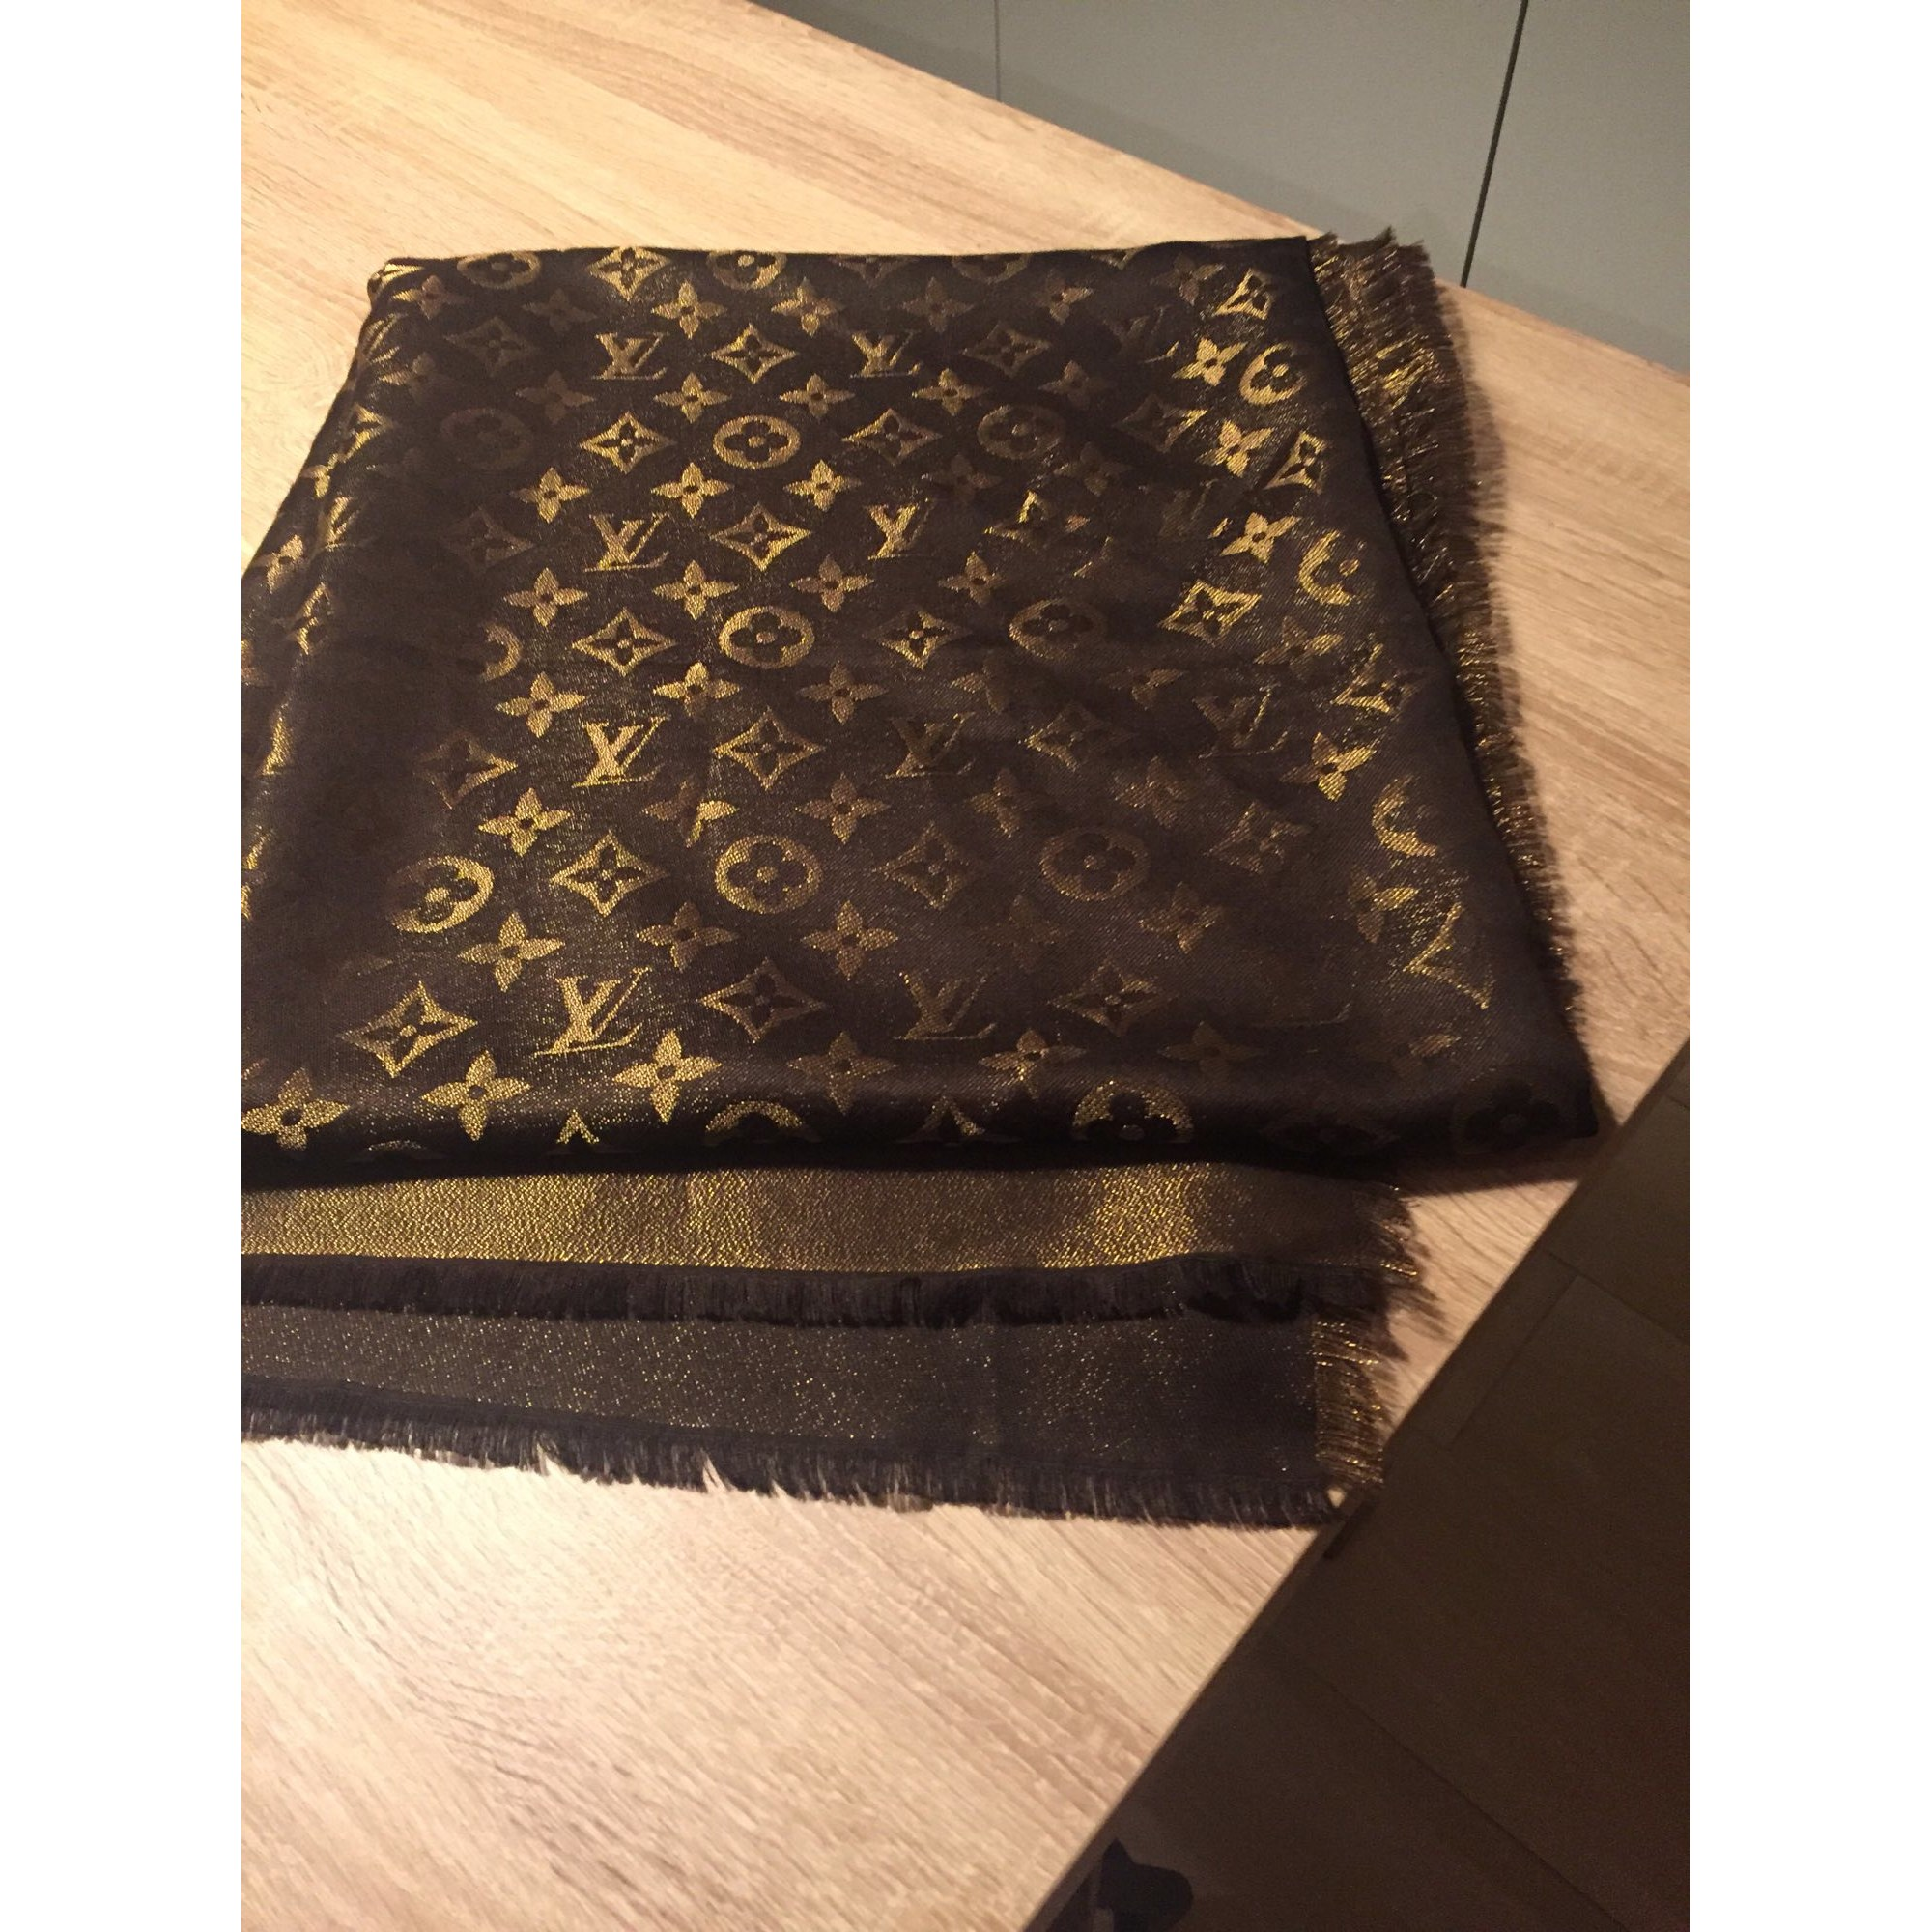 3a54dad37d Scialle LOUIS VUITTON marrone vendu par Sandra1530 - 7305303